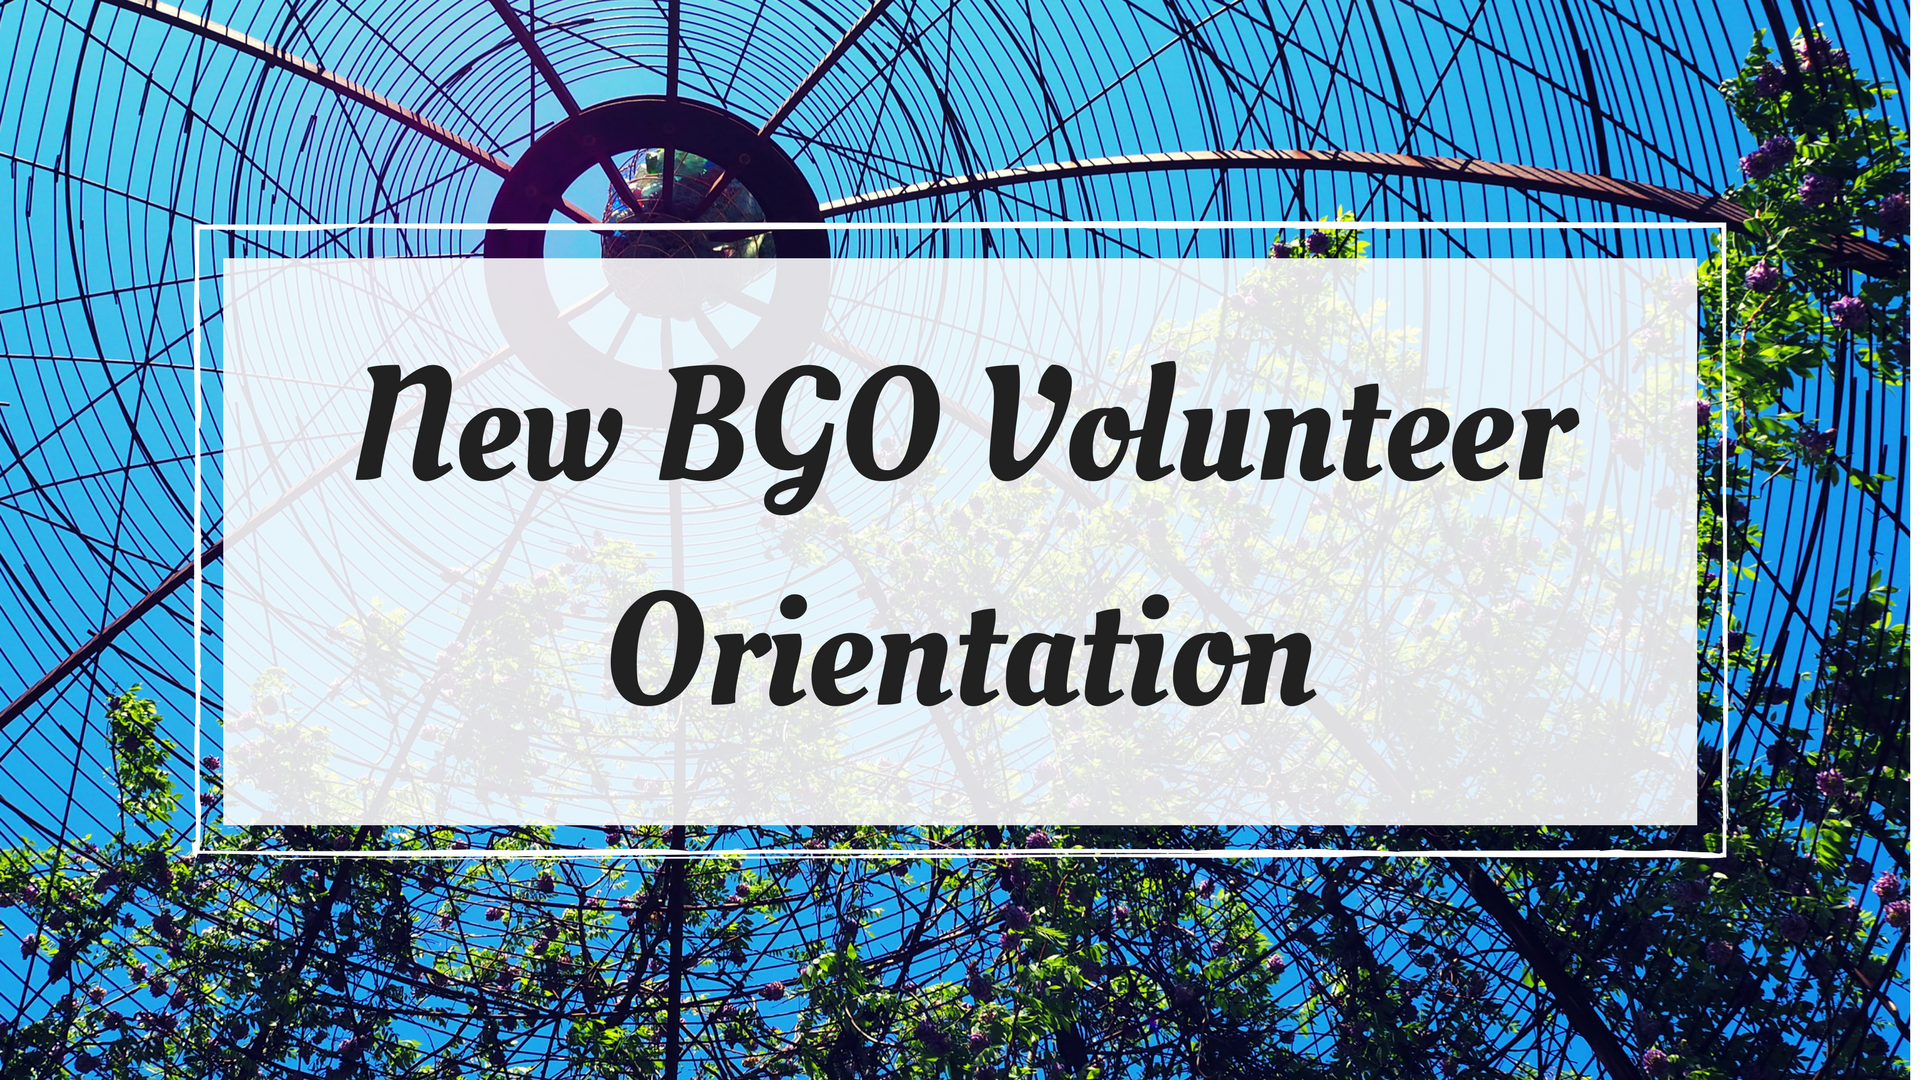 Come Dig In At Northwest Arkansasu0027 Only Botanical Garden! The Botanical  Garden Of The Ozarks Is Looking For Volunteers Like YOU To Help With ...